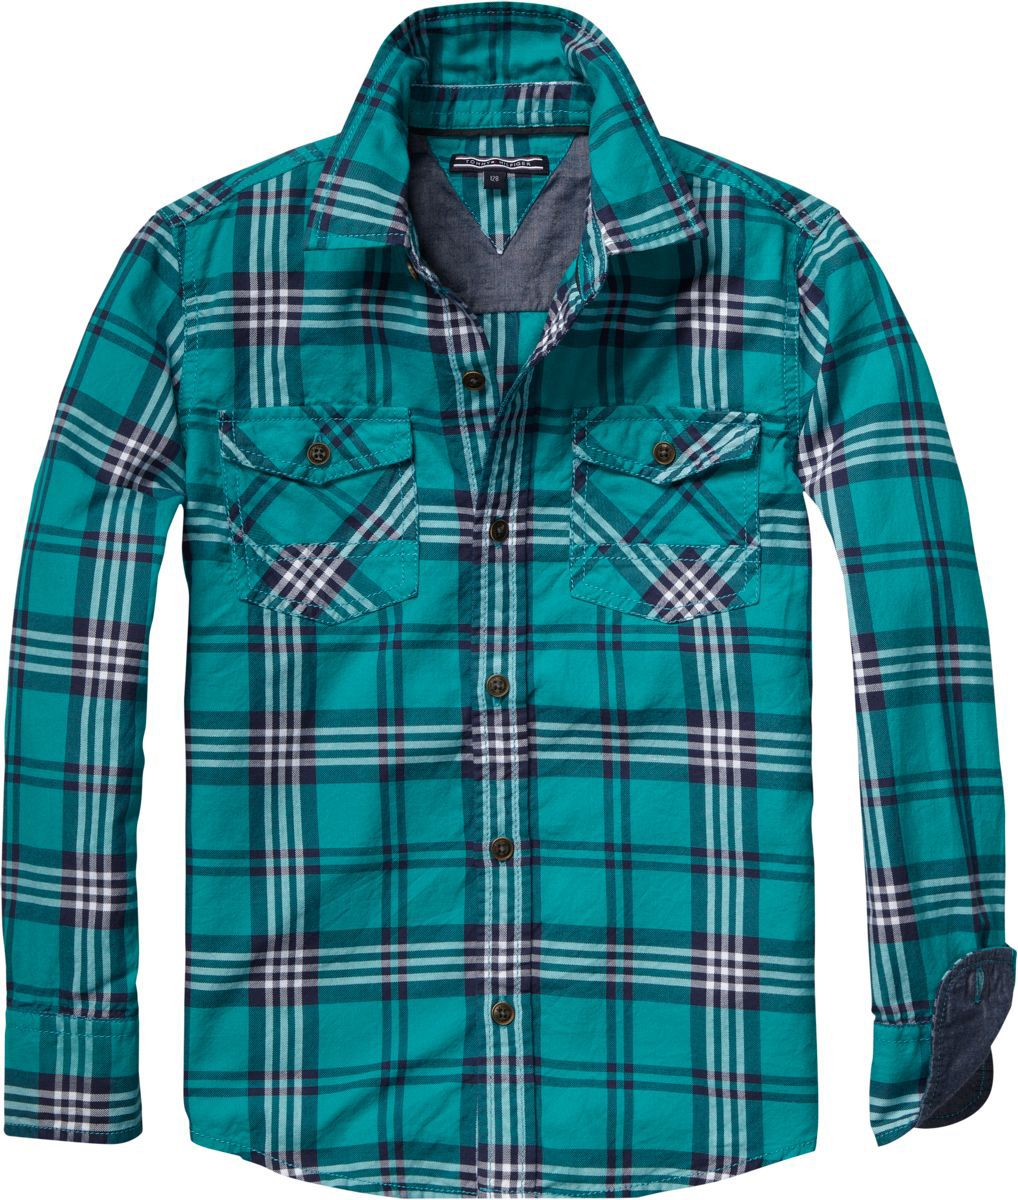 Boys harwich check shirt